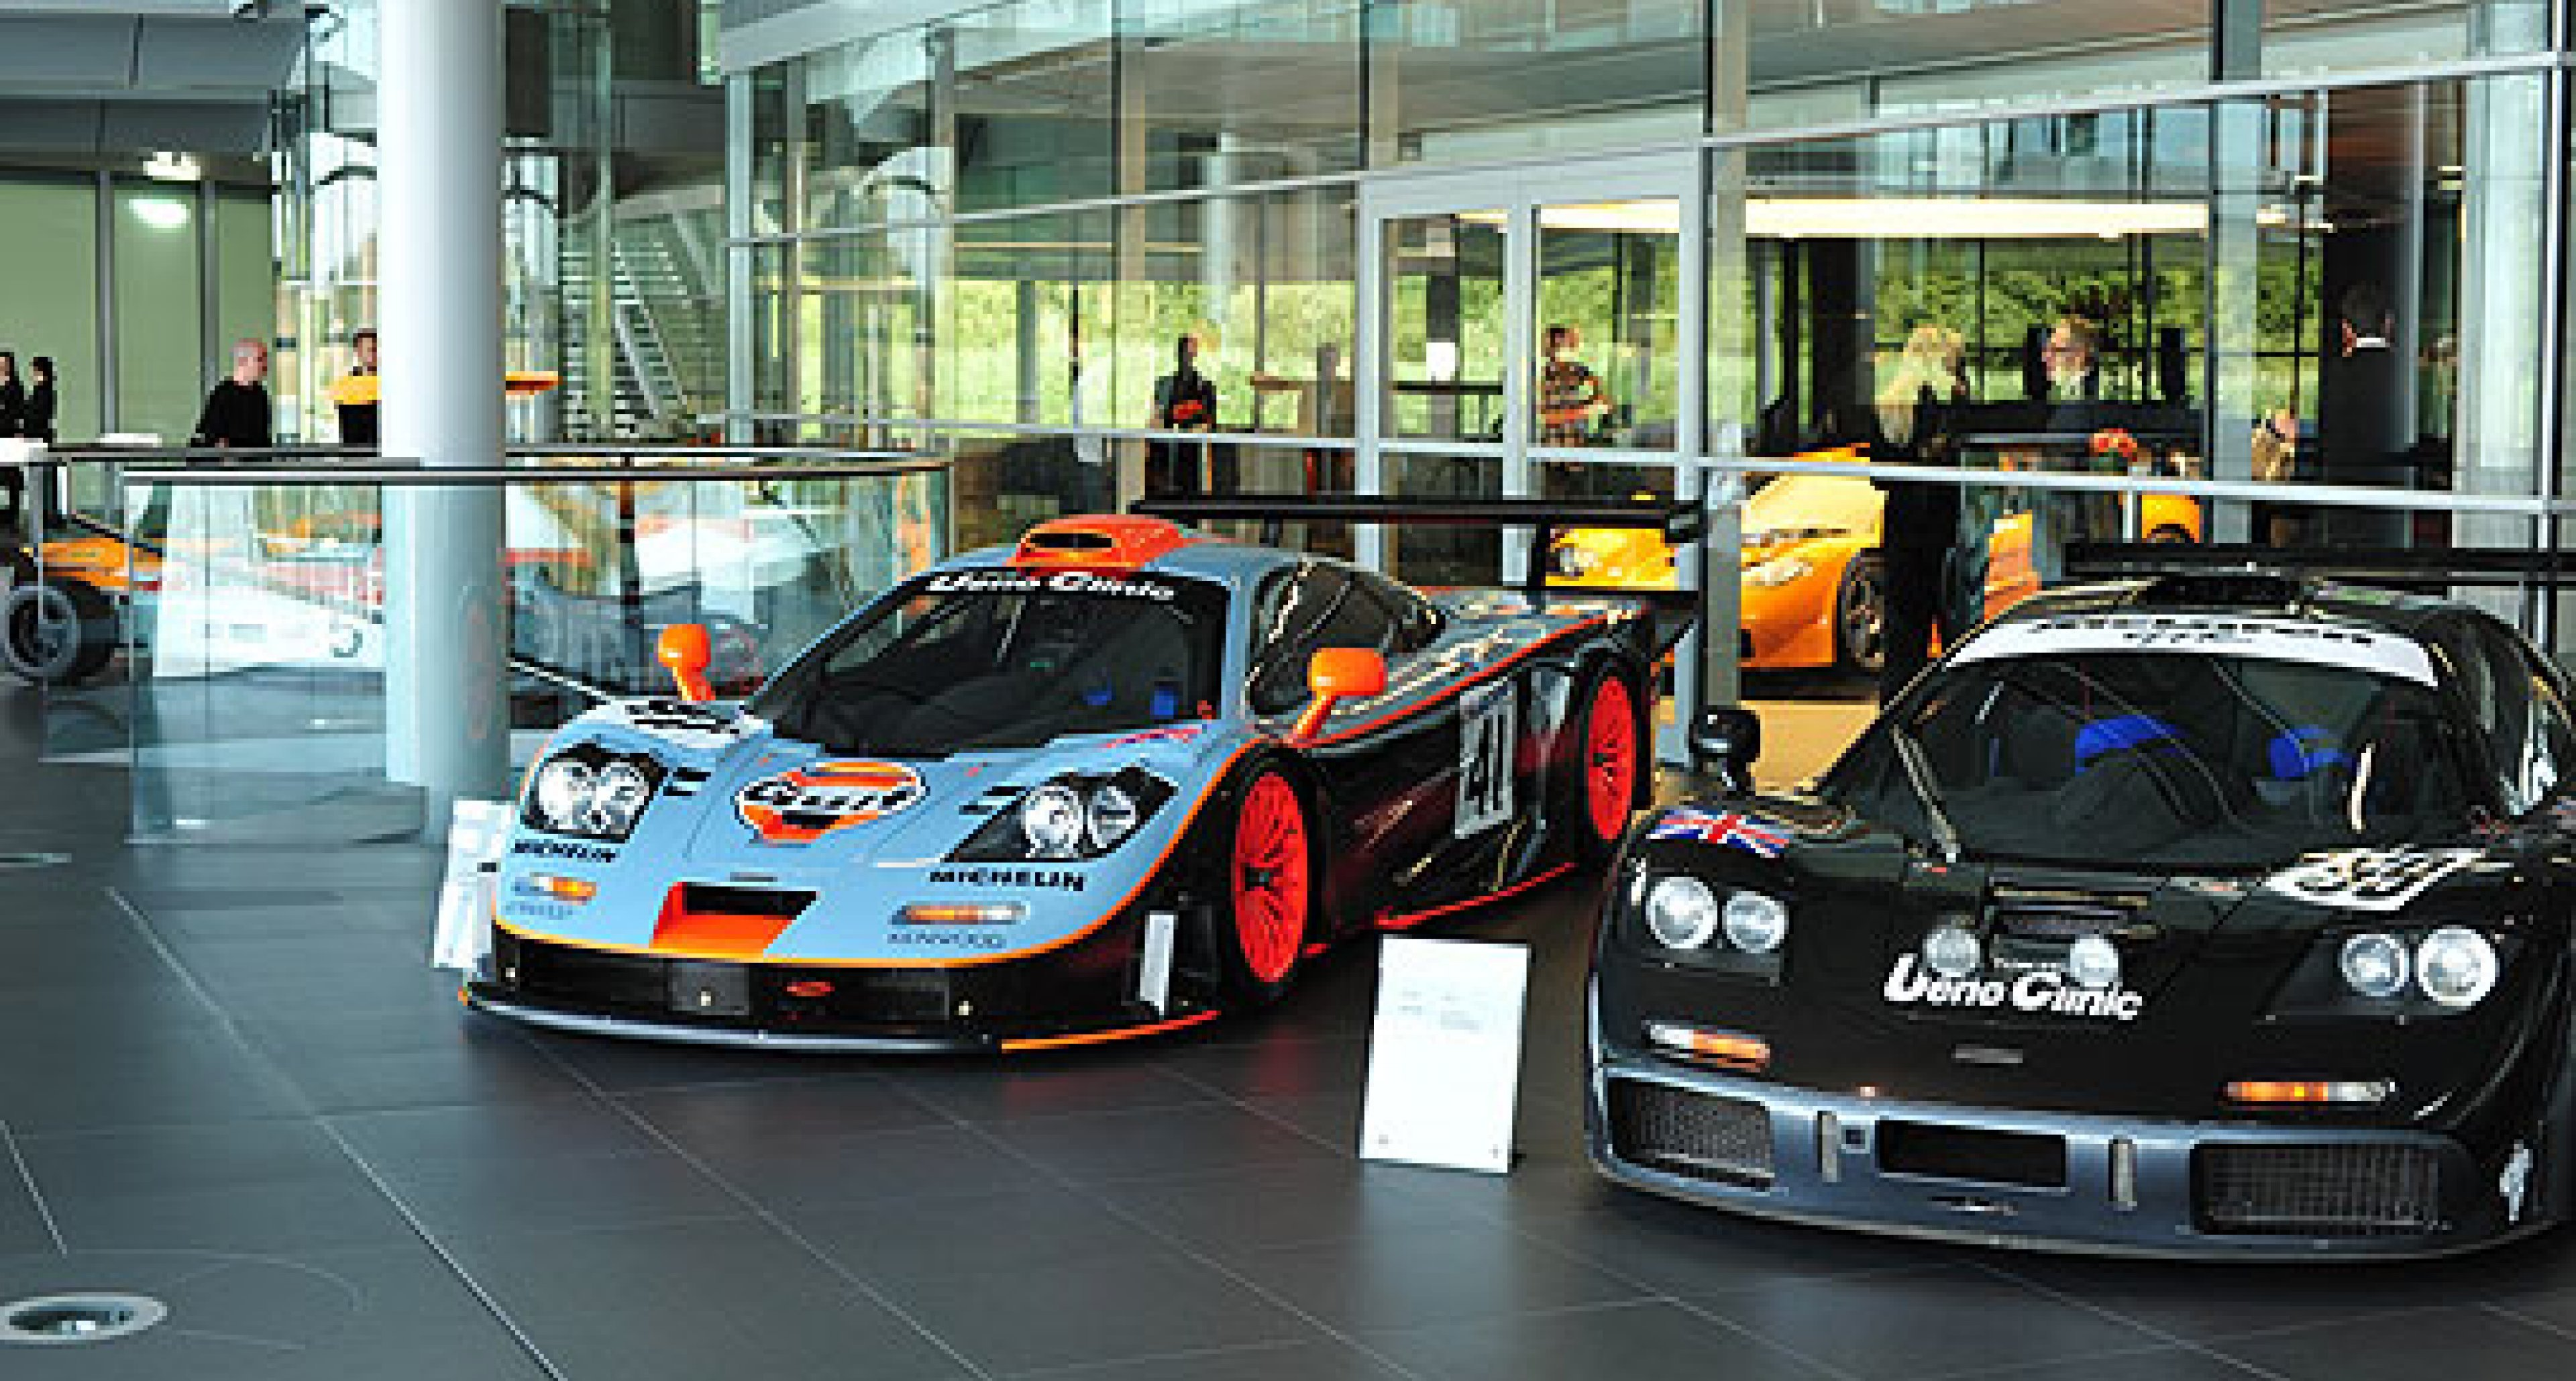 McLaren Automotive: First Deliveries of MP4-12Cs in Early 2011